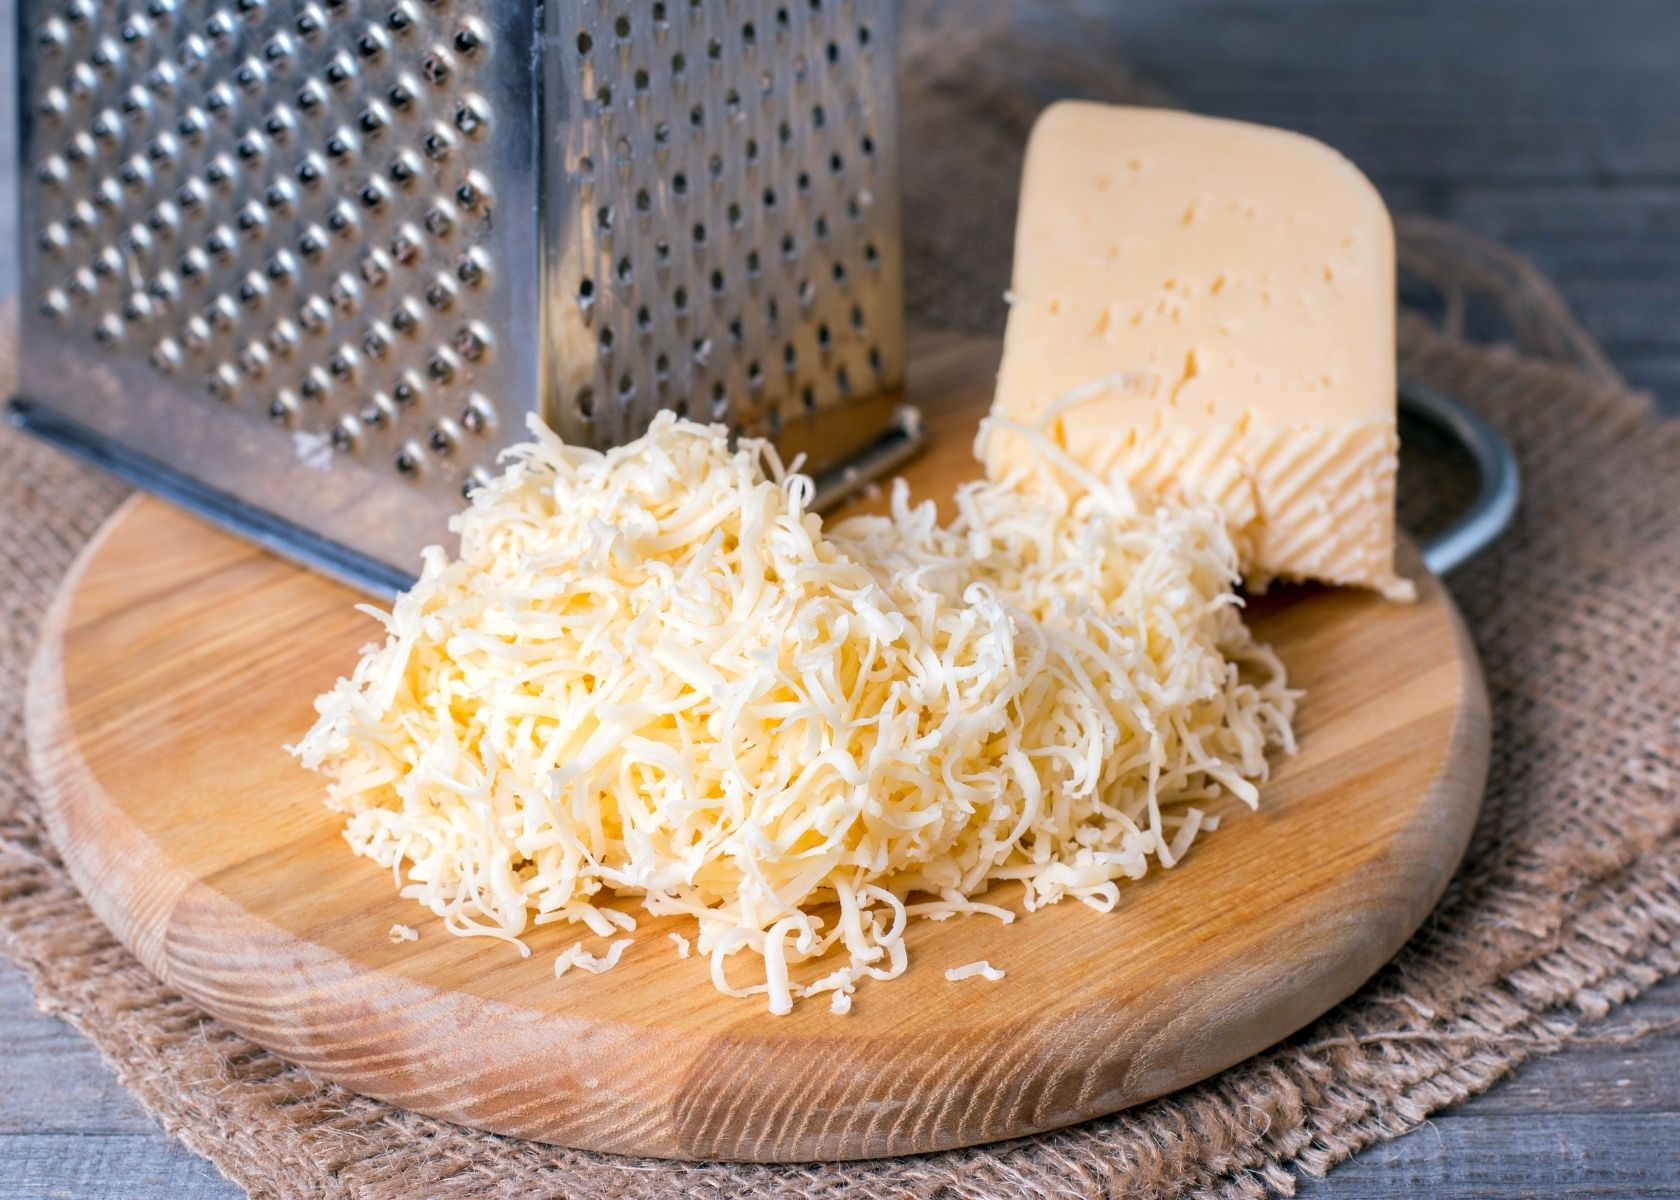 Grated cheese on wooden circle next to block and metal grater.